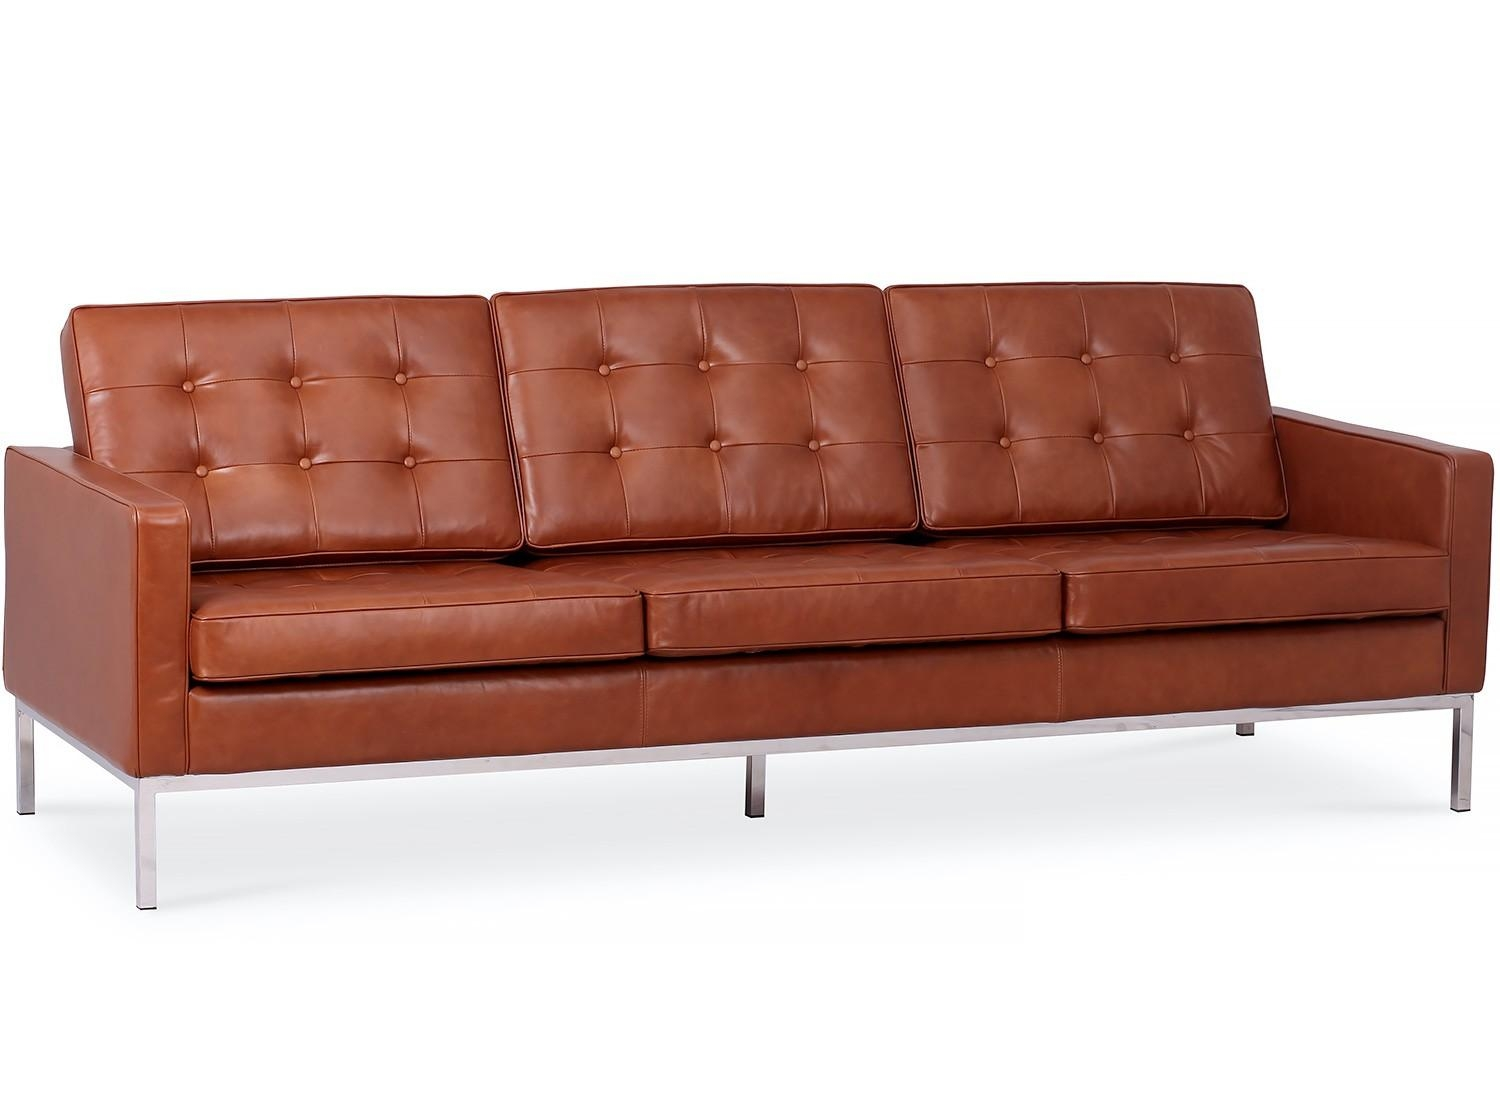 Florence Knoll Sofa 3 Seater Leather (Platinum Replica) Within Florence  Knoll 3 Seater Sofas